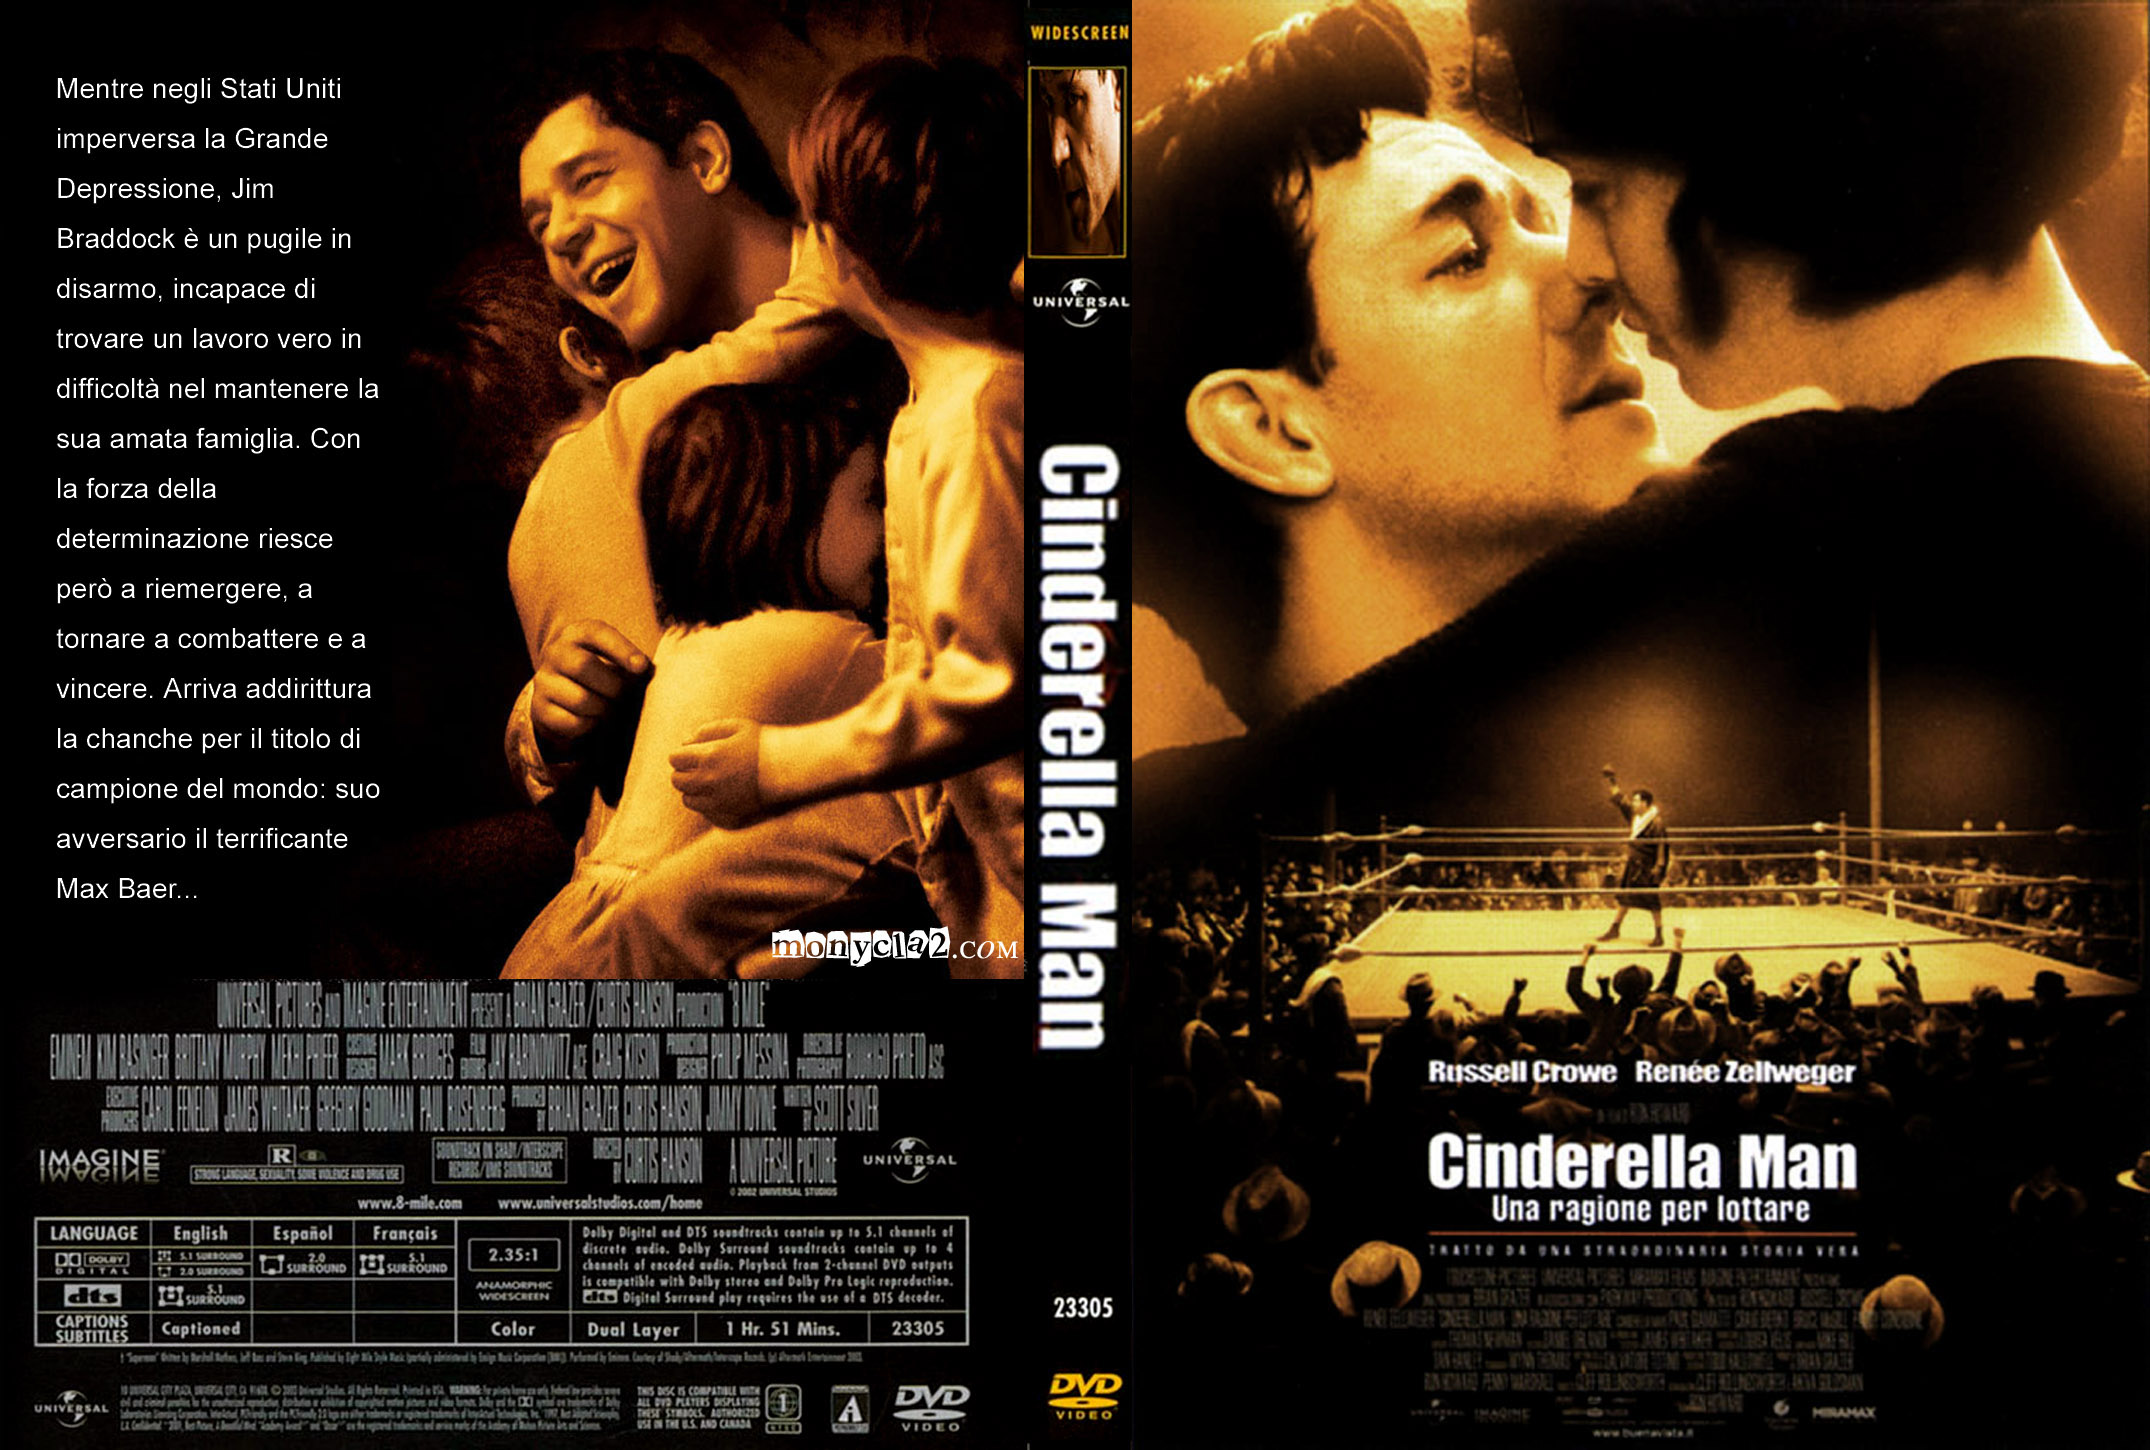 Cinderella Man Quotes Interesting Cinderella Man Quotes Captivating Joe Gould And Braddock